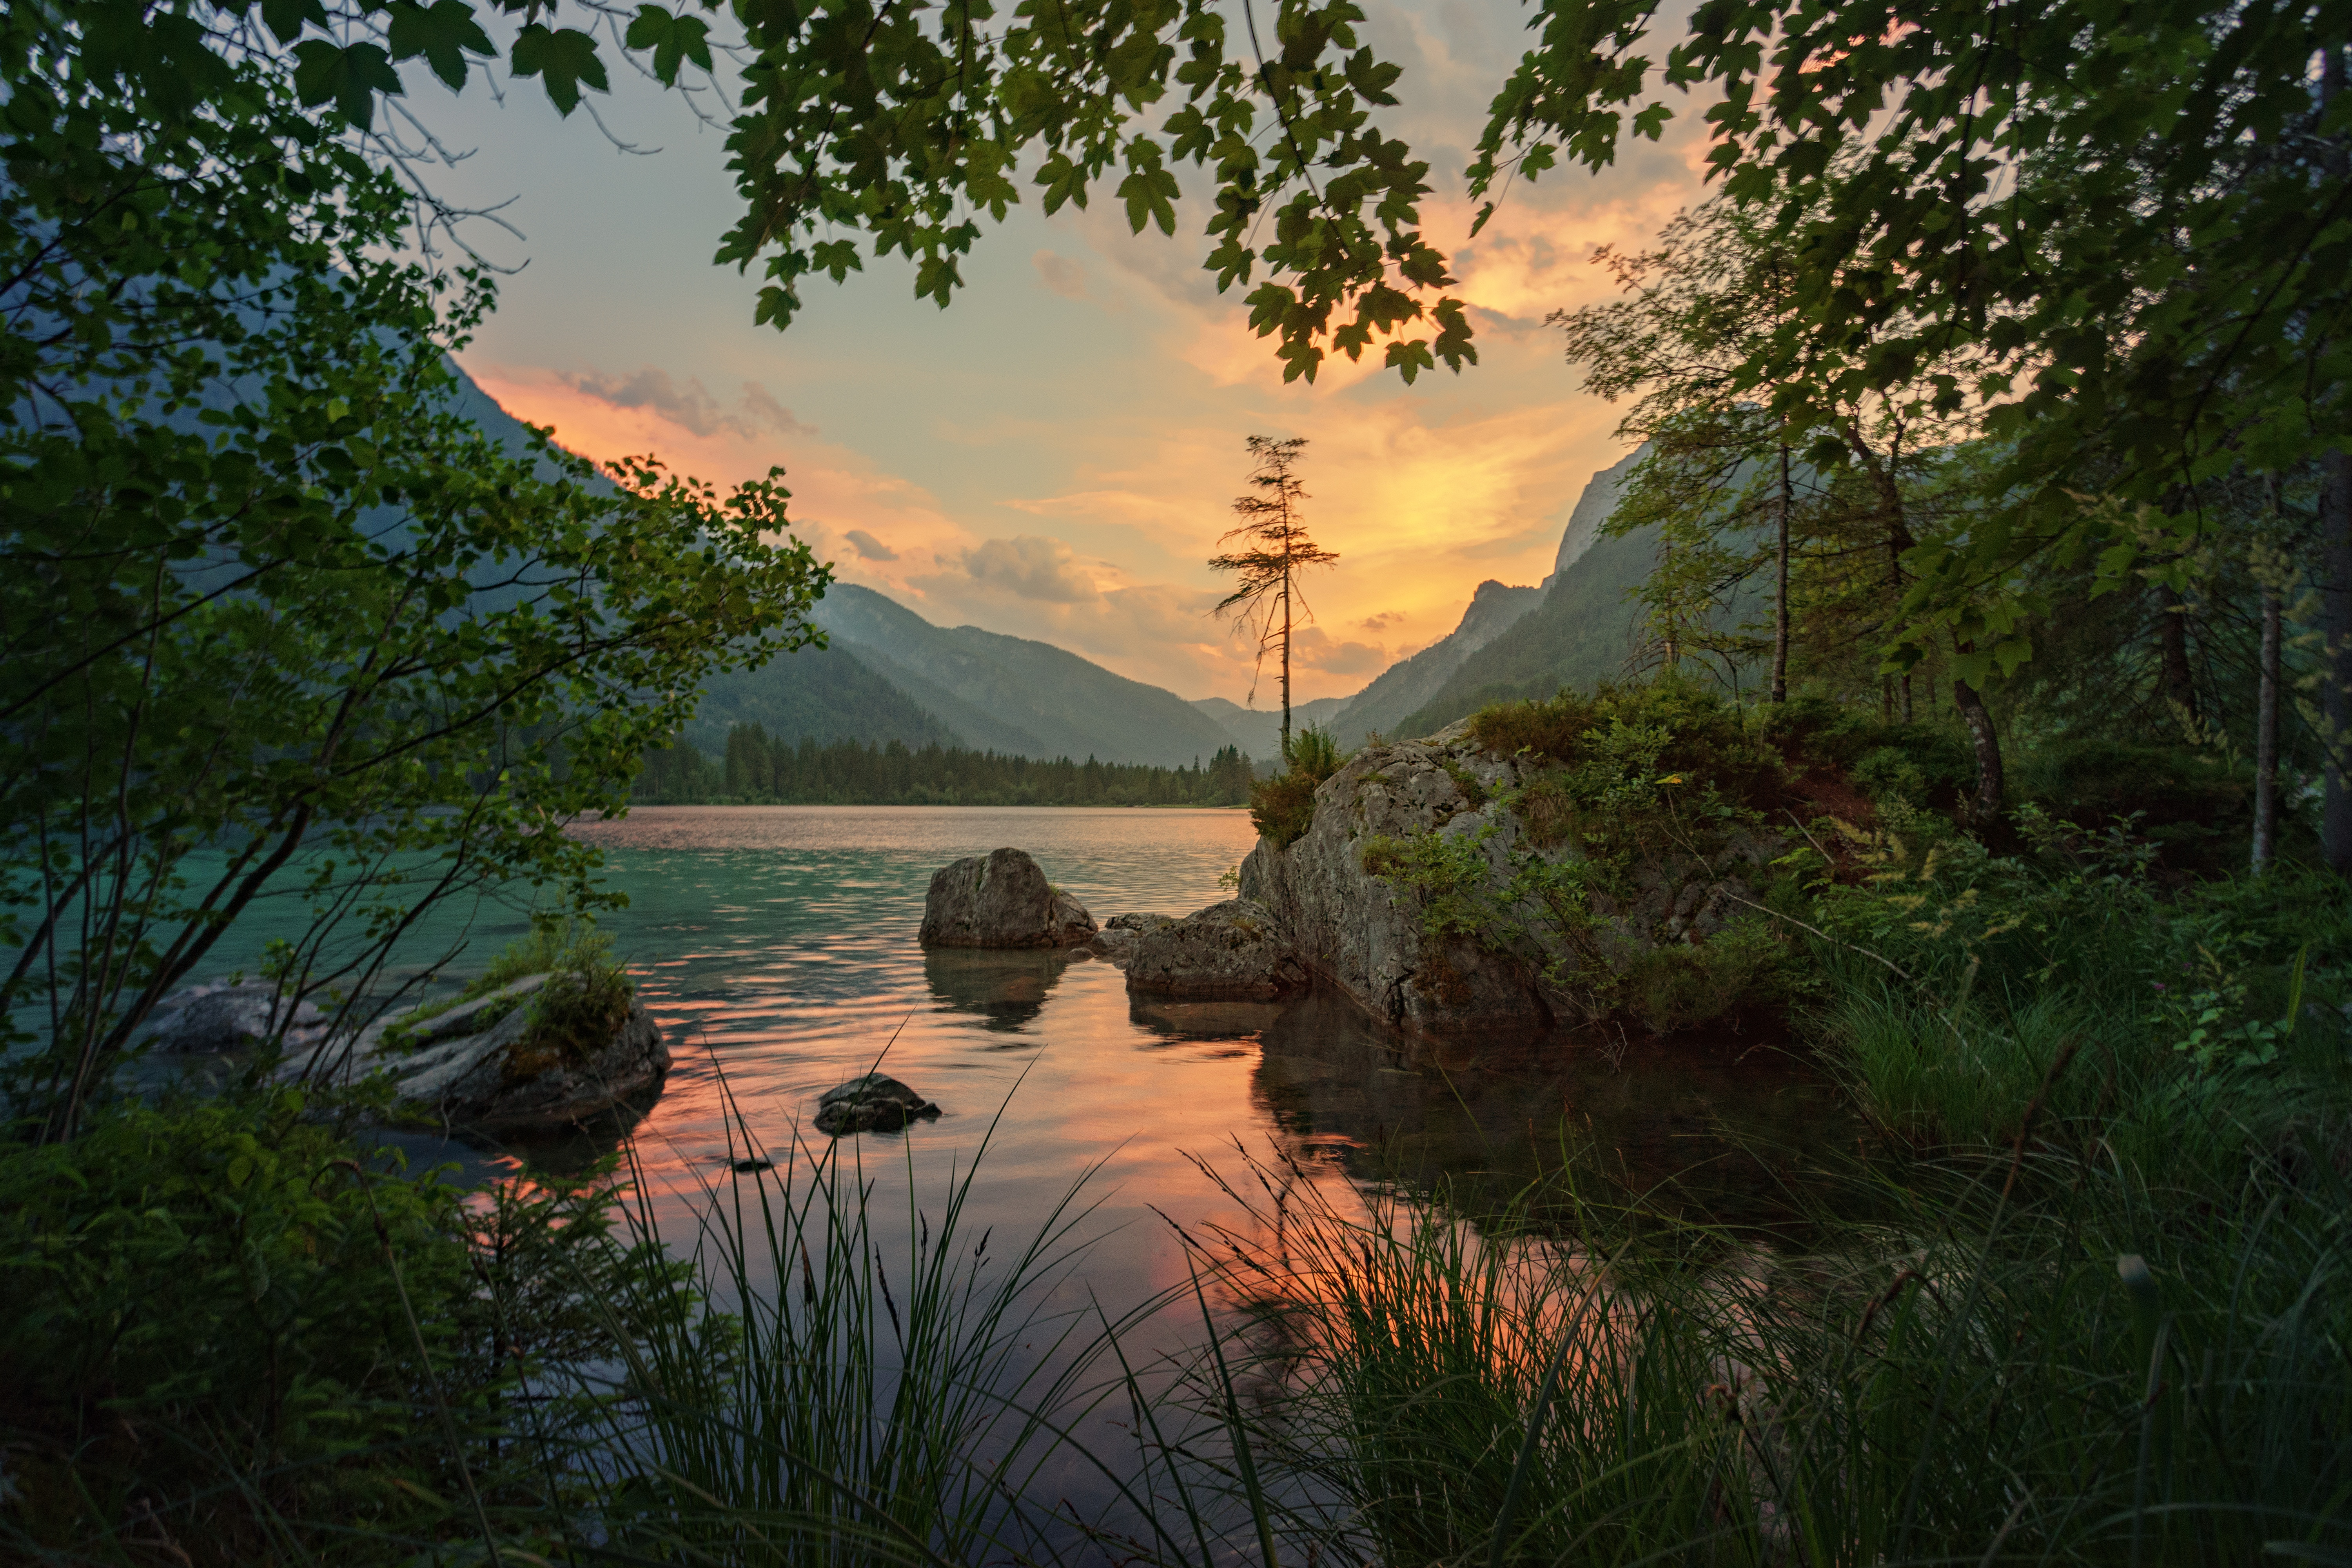 107802 download wallpaper Trees, Nature, Rivers, Stones, Mountains screensavers and pictures for free